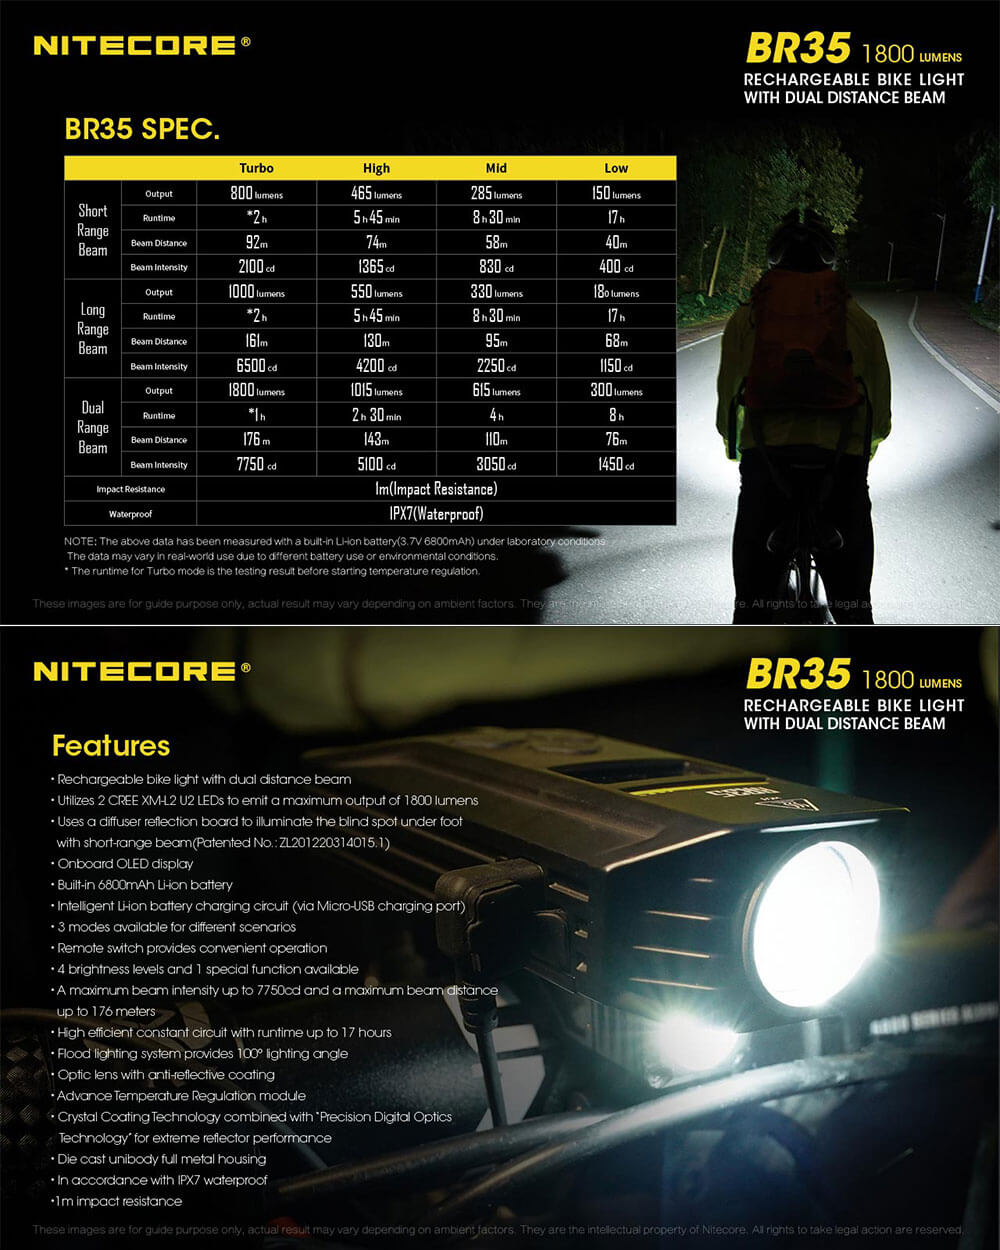 br35 usb bike light